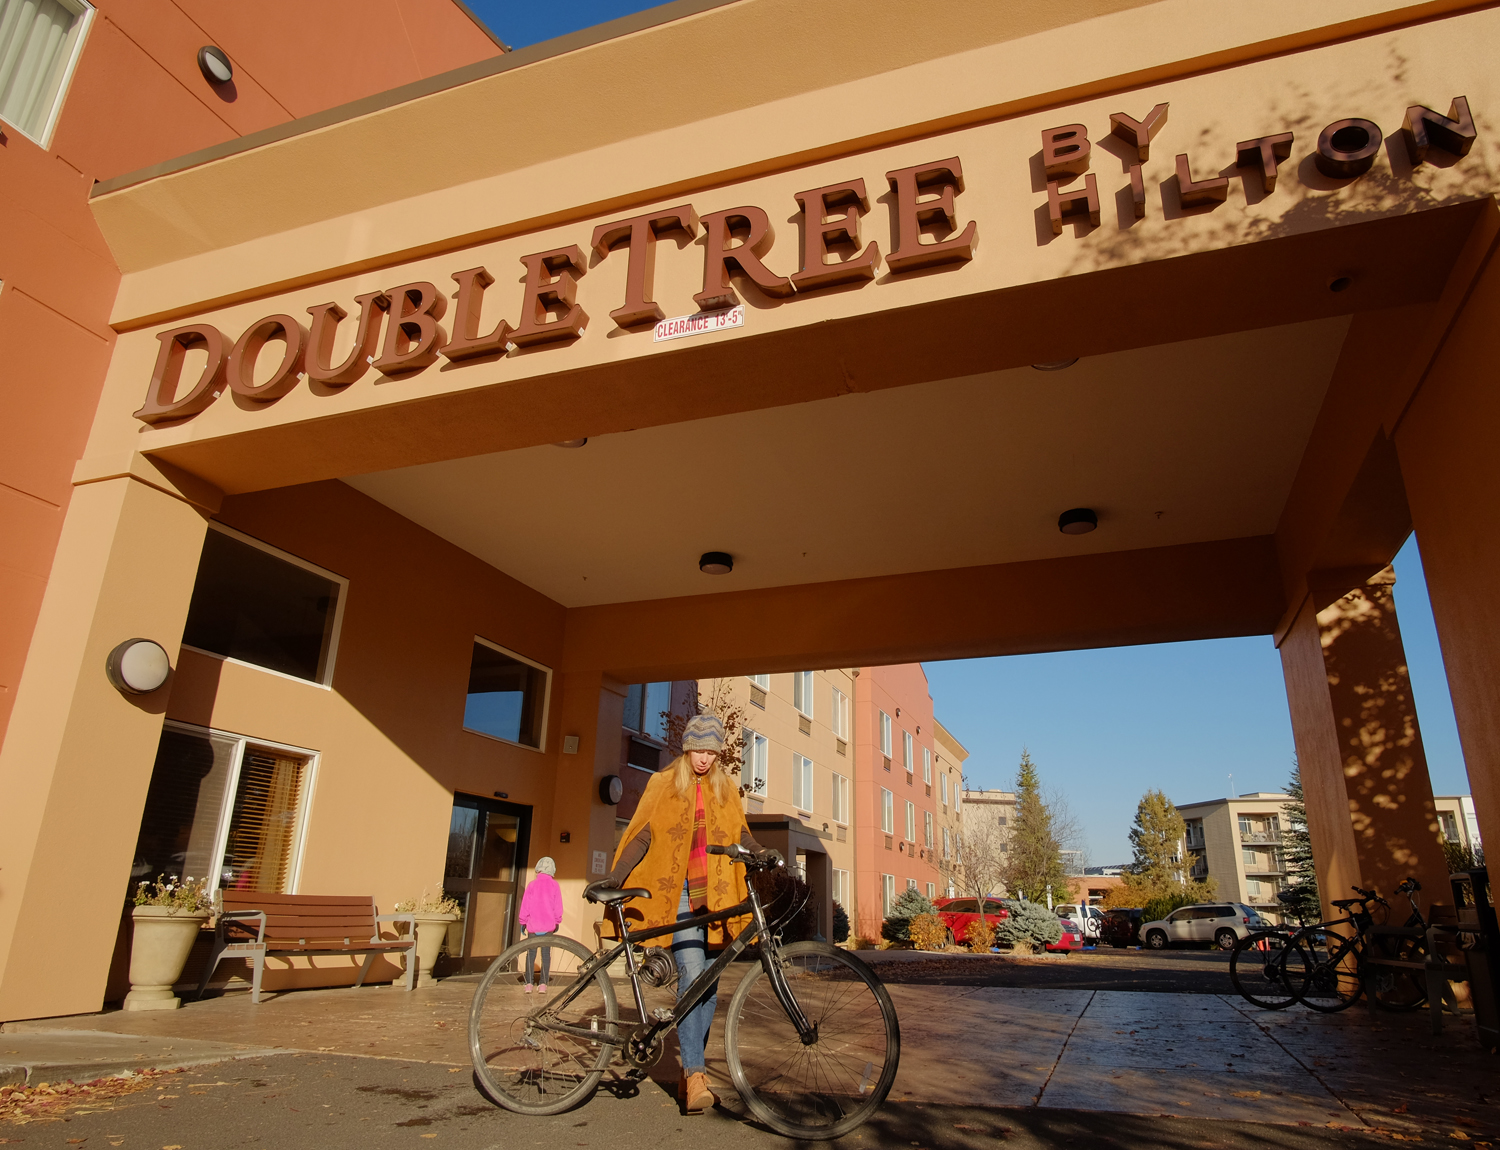 Doubletree Hotel. Photo by Kyle Ramey of Bikabout